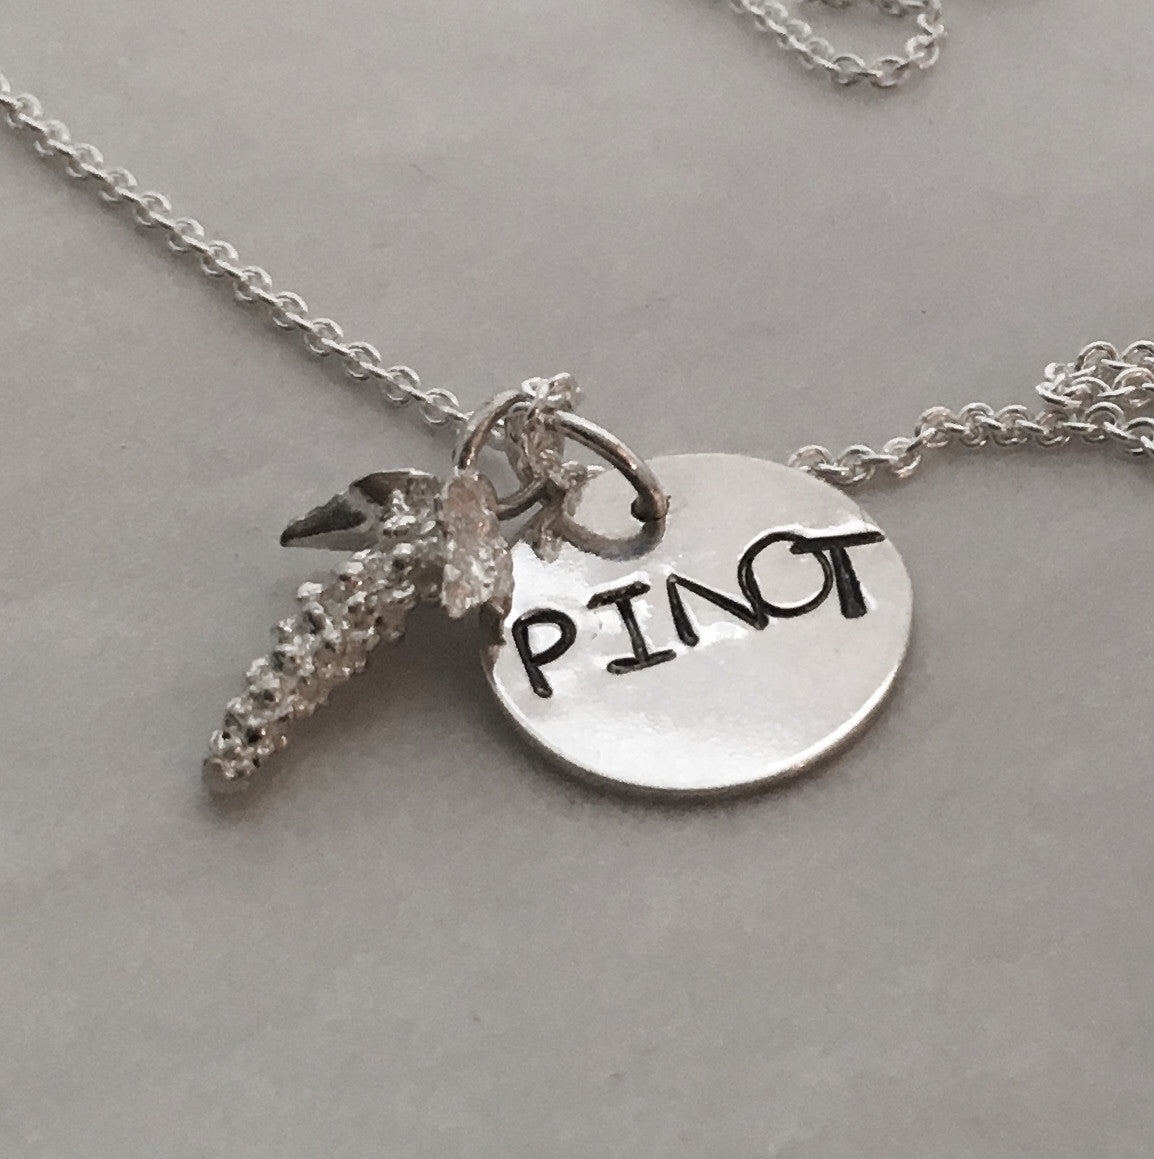 Hand Stamped Pinot Red Wine Charm in Sterling Silver